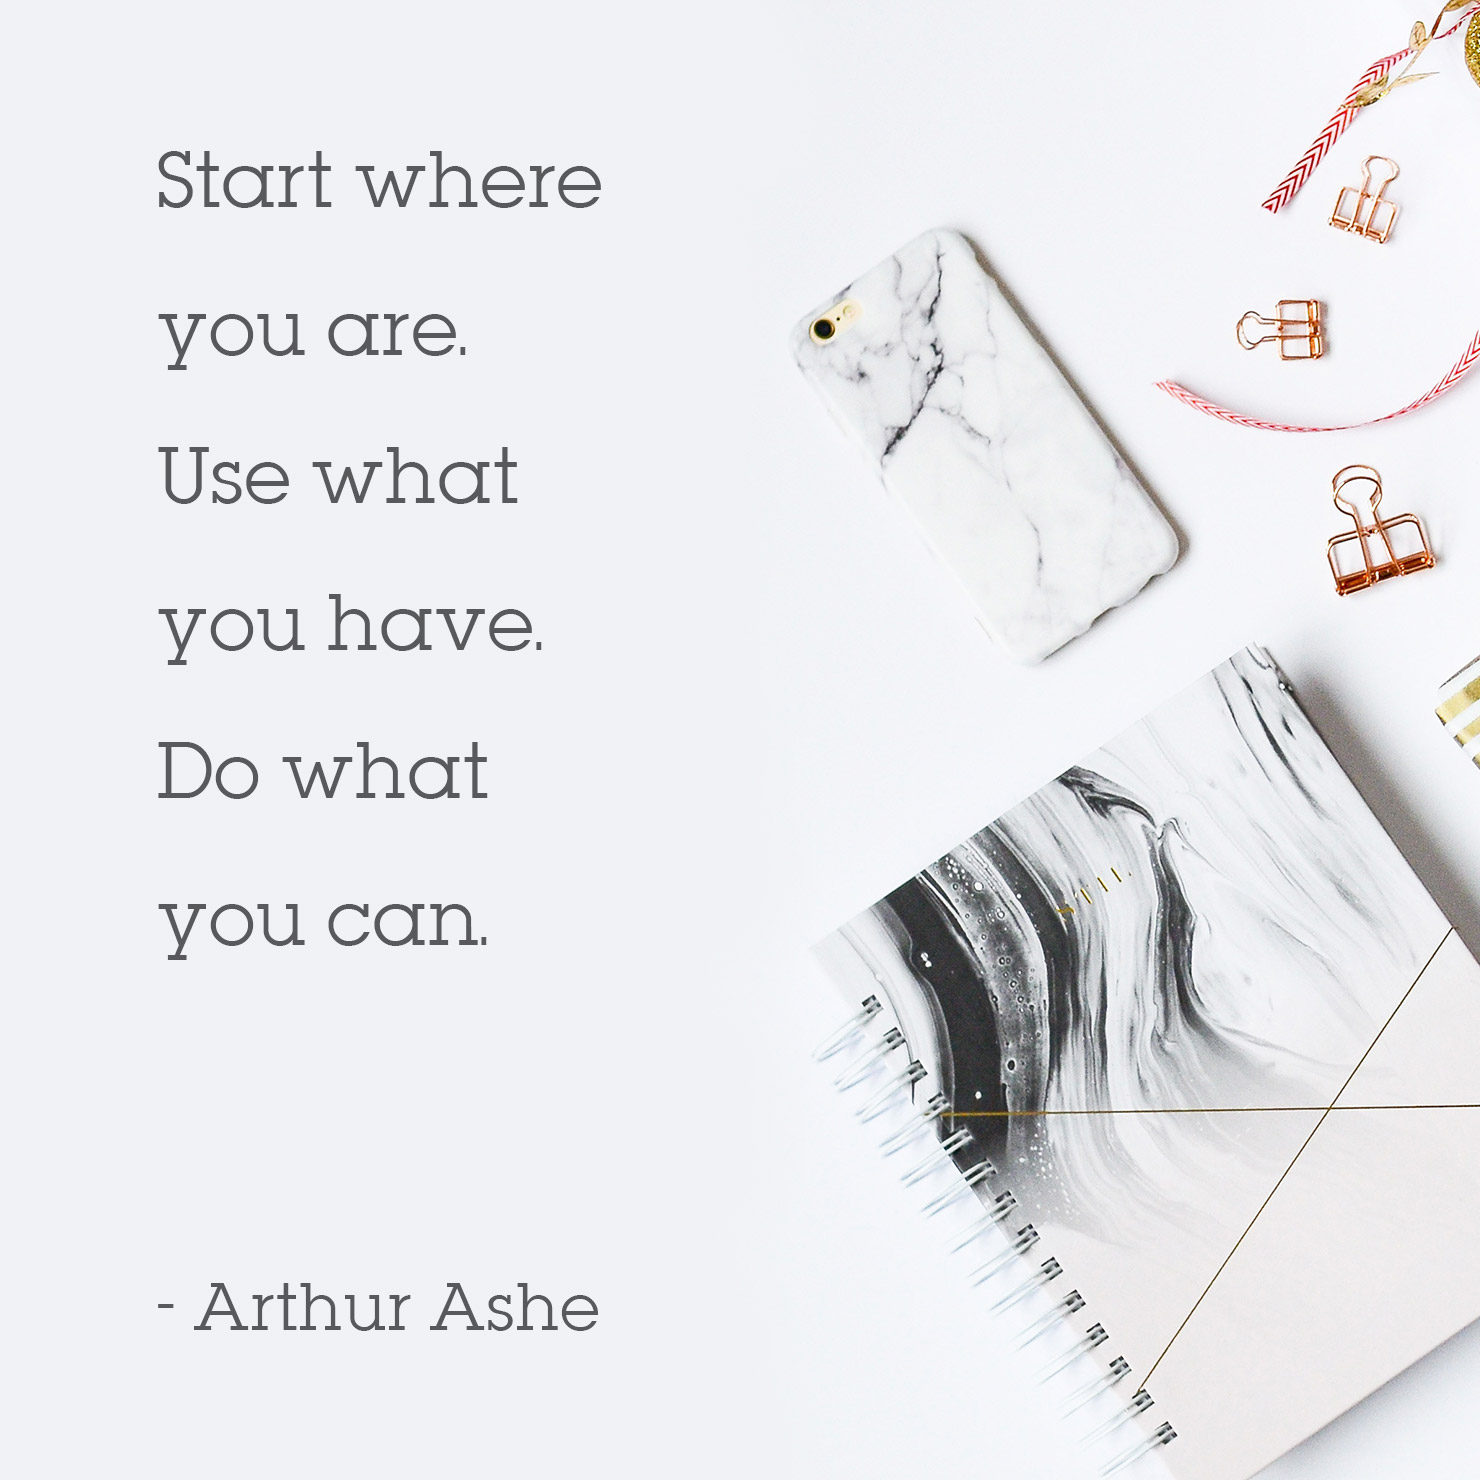 high school graduation quote: Start where you are. use hwat you have. do what you can - Arthur Ashe